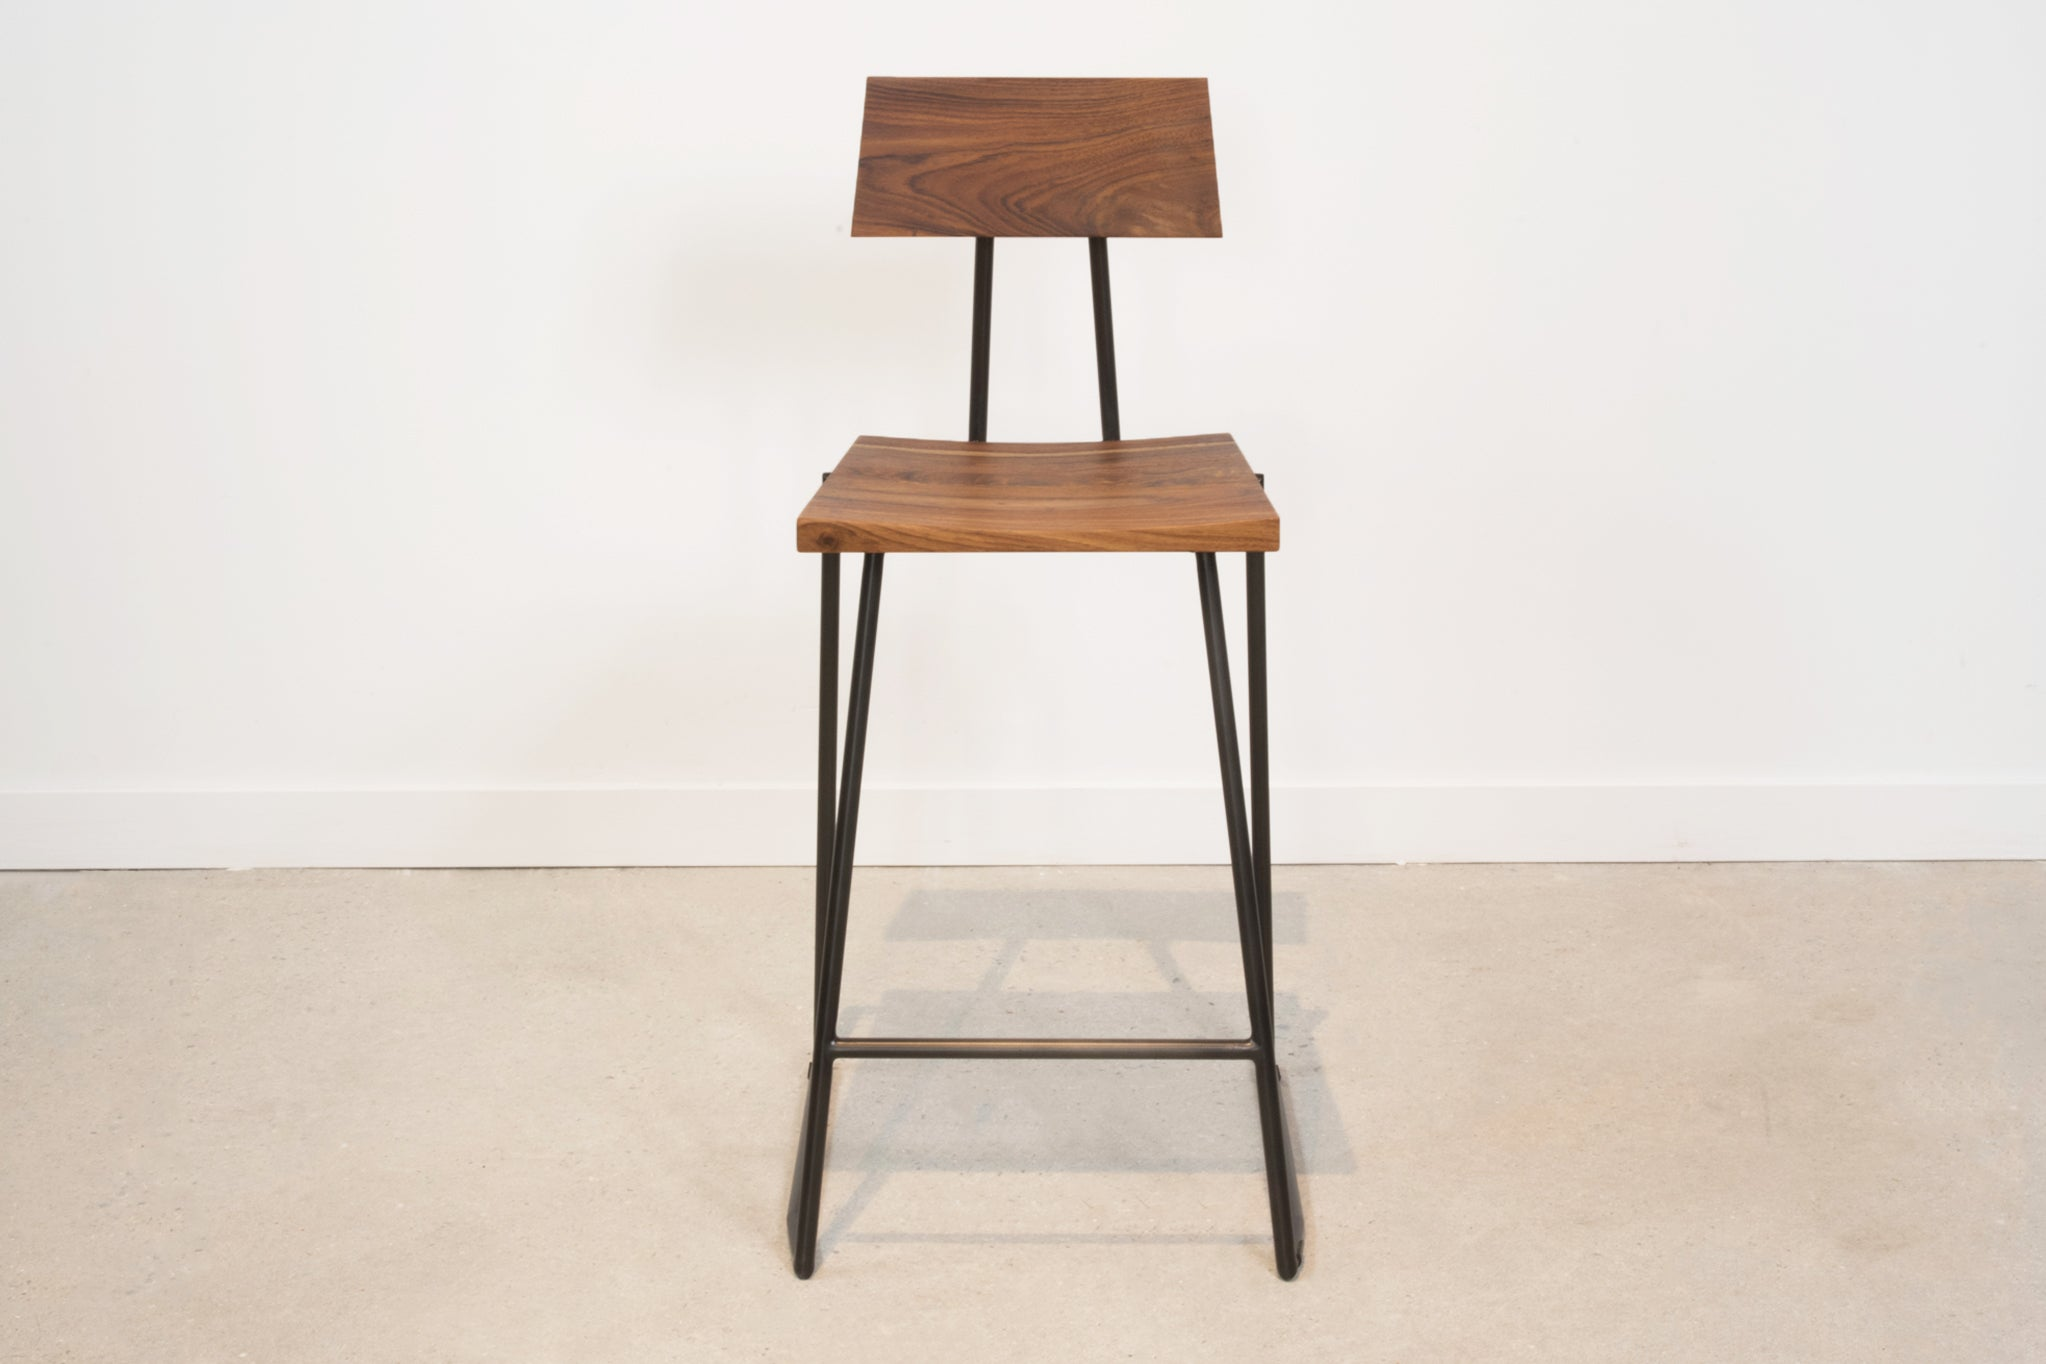 Incredible Ziggy Bar Counter Stool From The Source Gmtry Best Dining Table And Chair Ideas Images Gmtryco